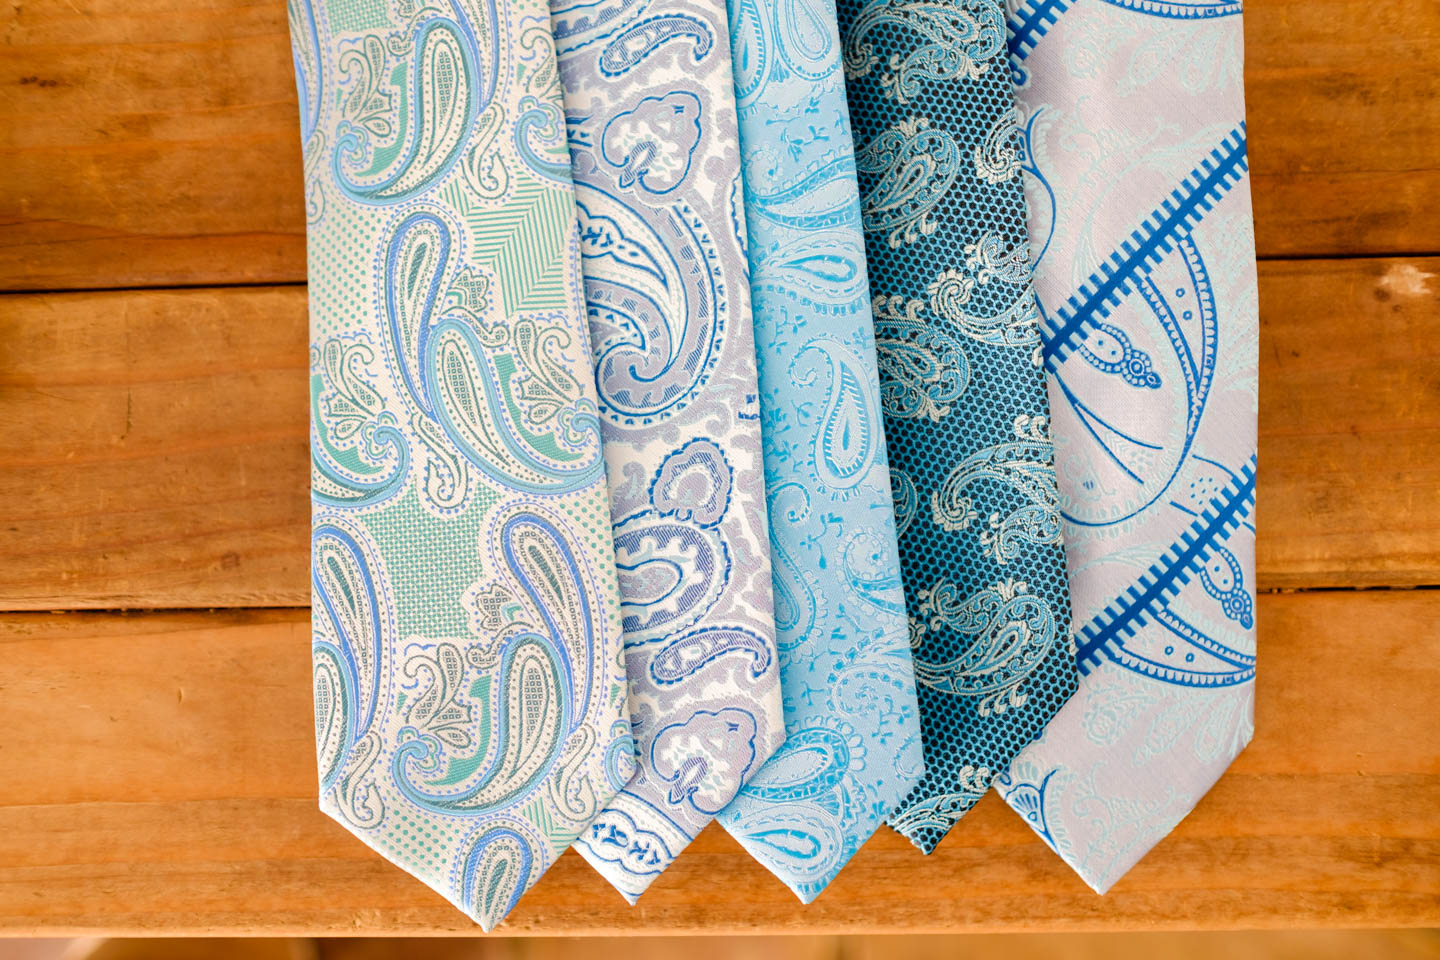 Wedding ties for groom and groomsmen